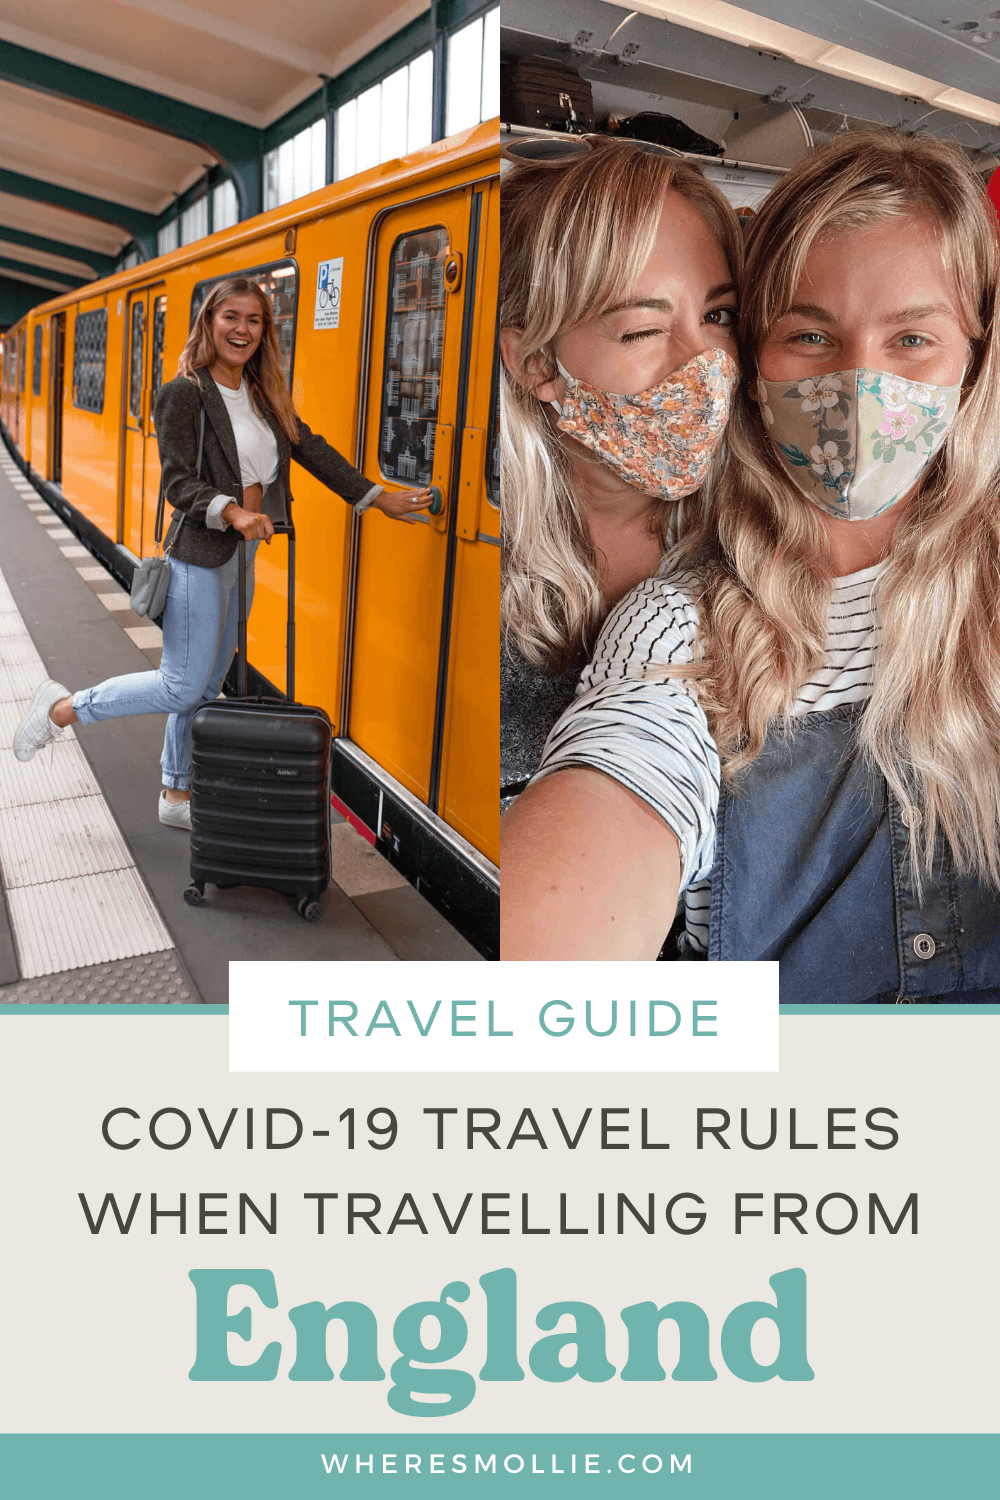 England's COVID-19 travel restrictions: where can you travel?